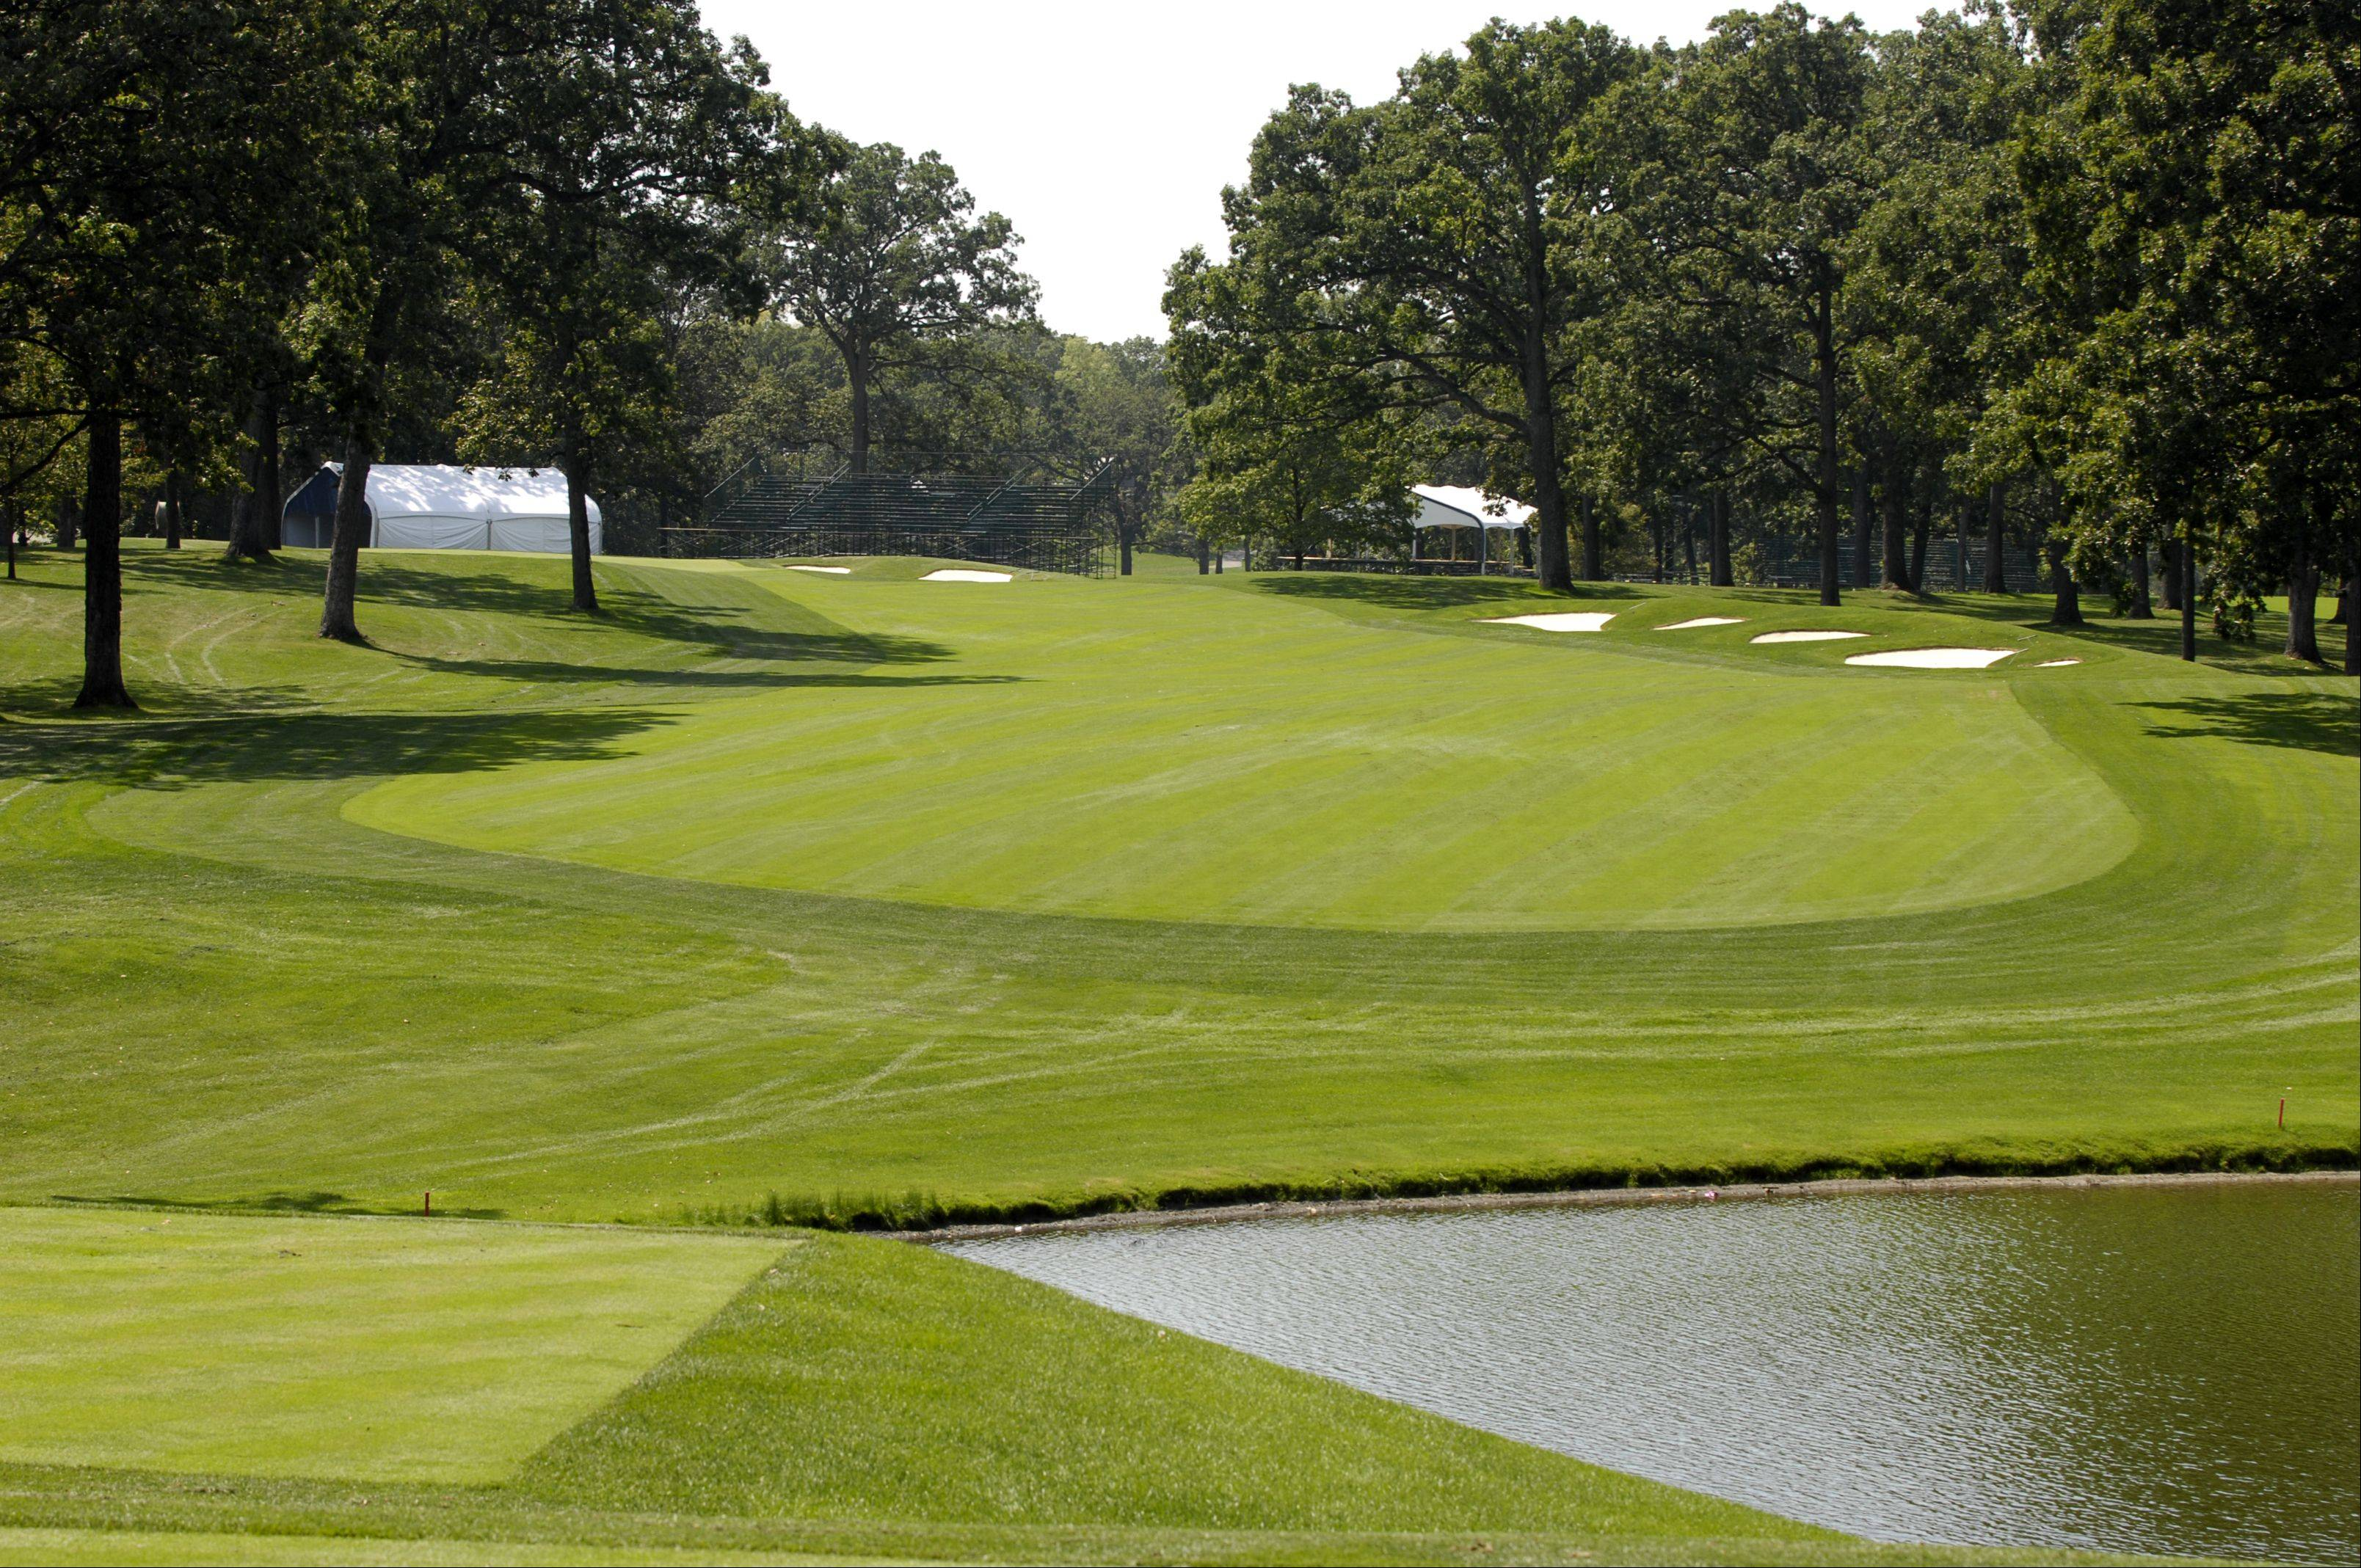 Medinah Country Club course No. 3 has been improved in preparation for the Ryder Cup.